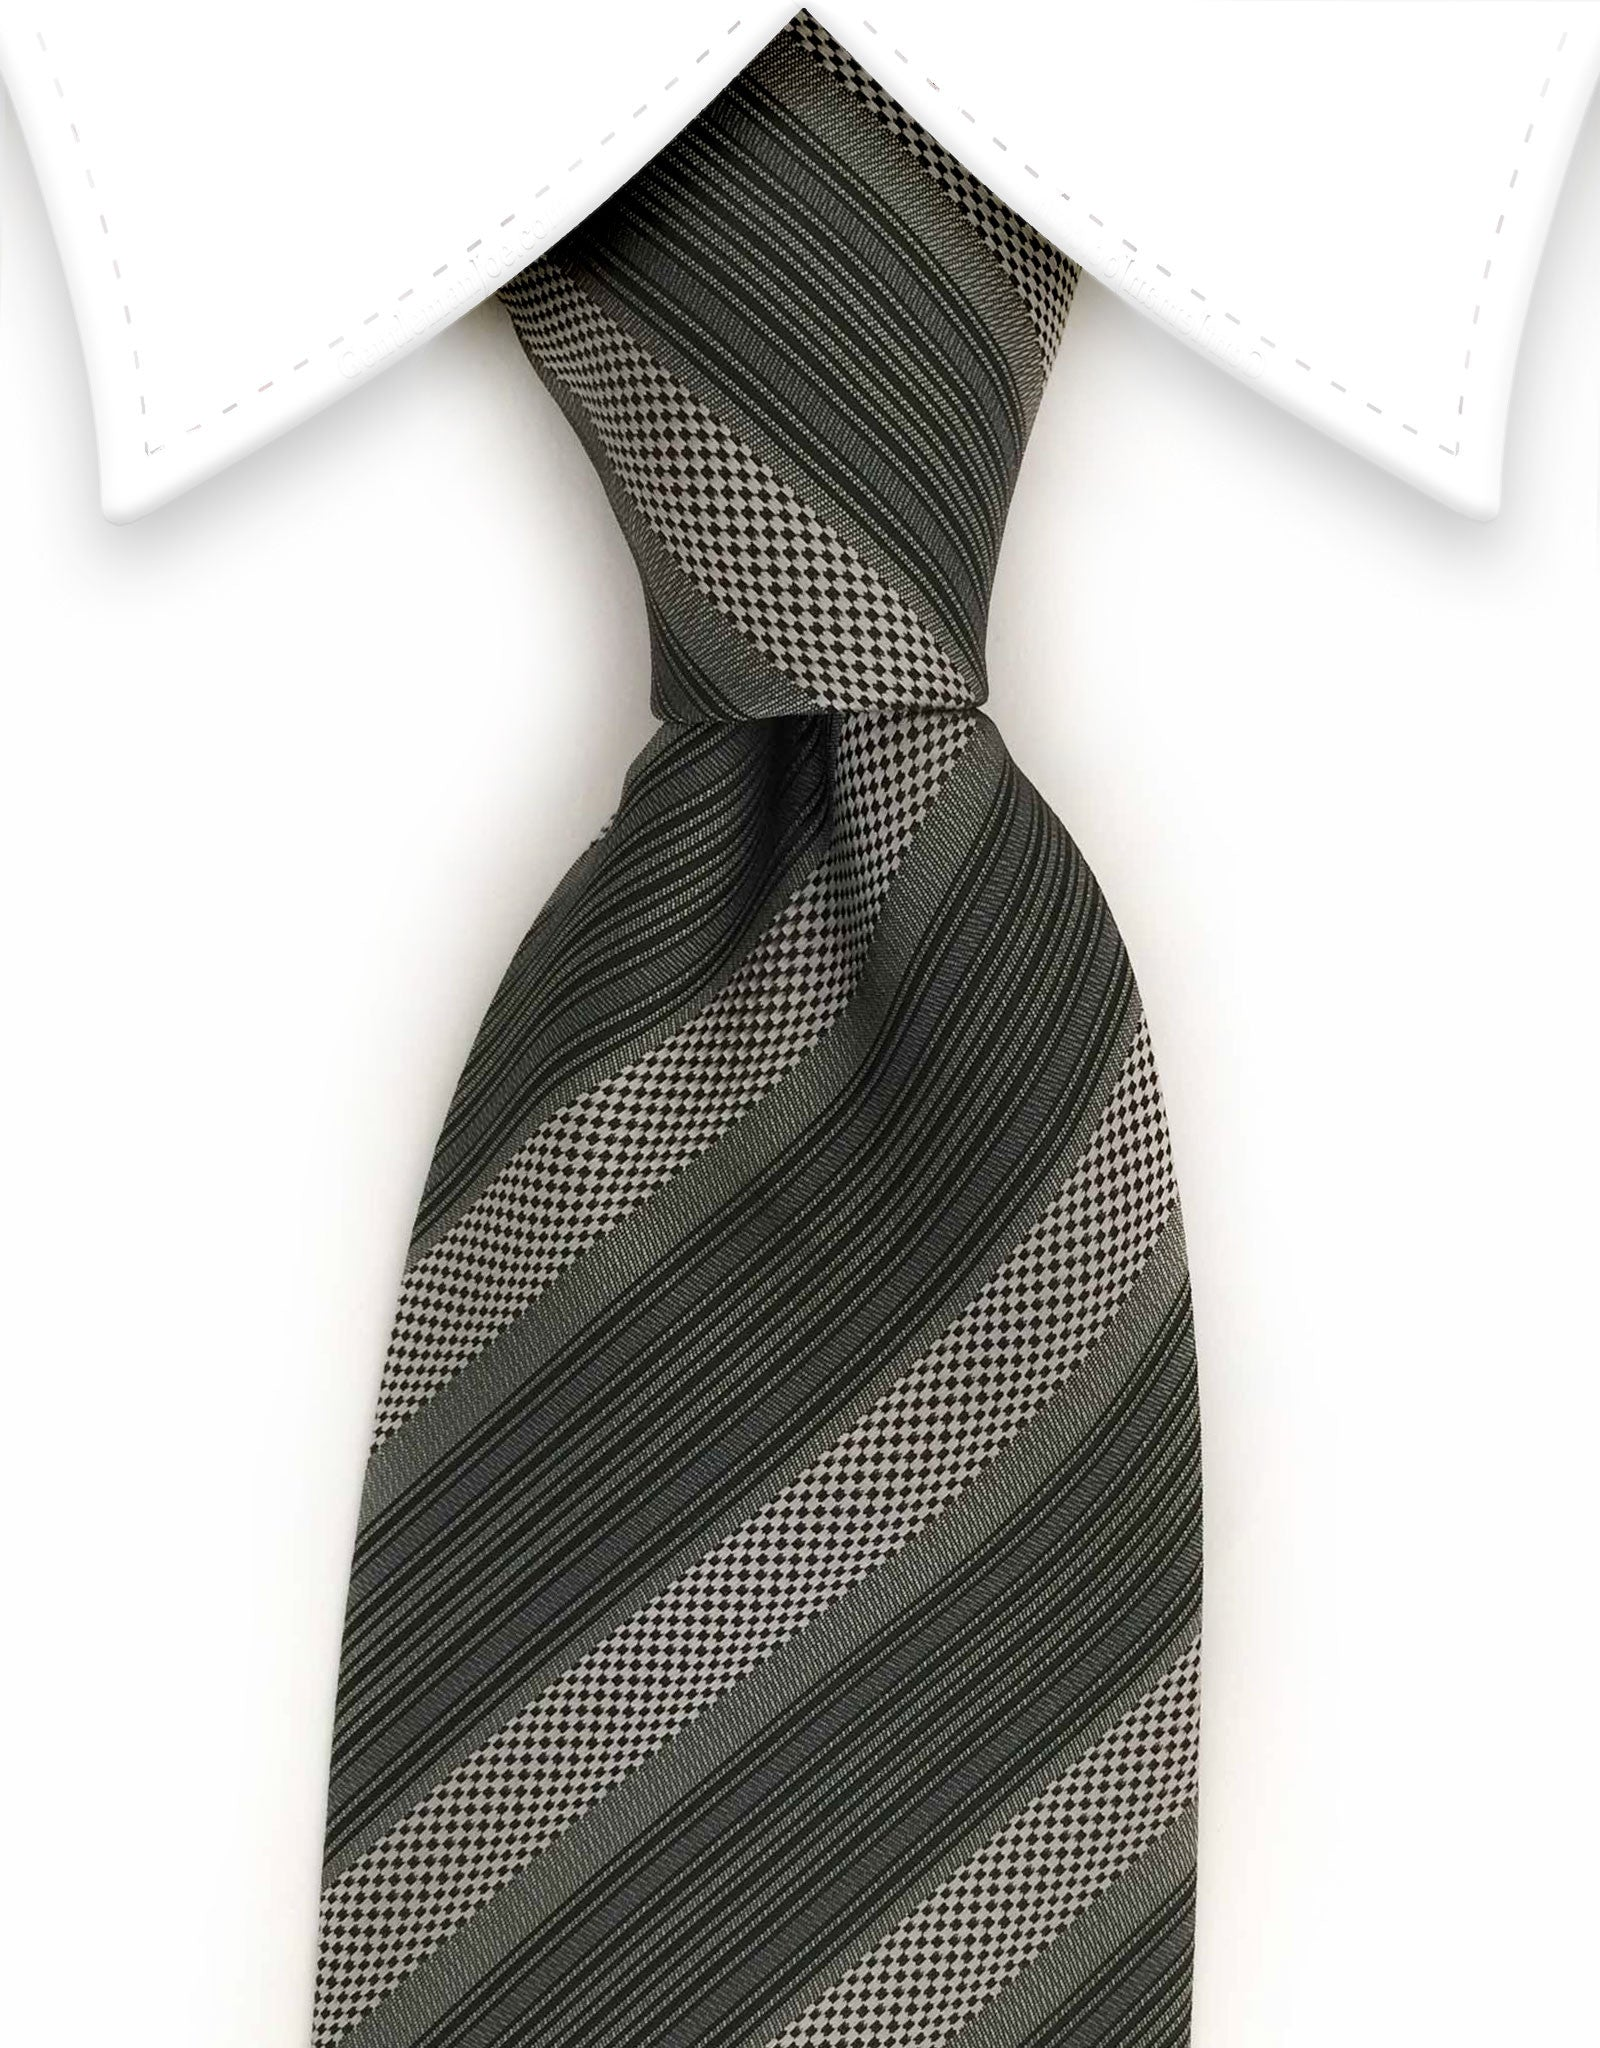 Silver, Gray & Charcoal tie